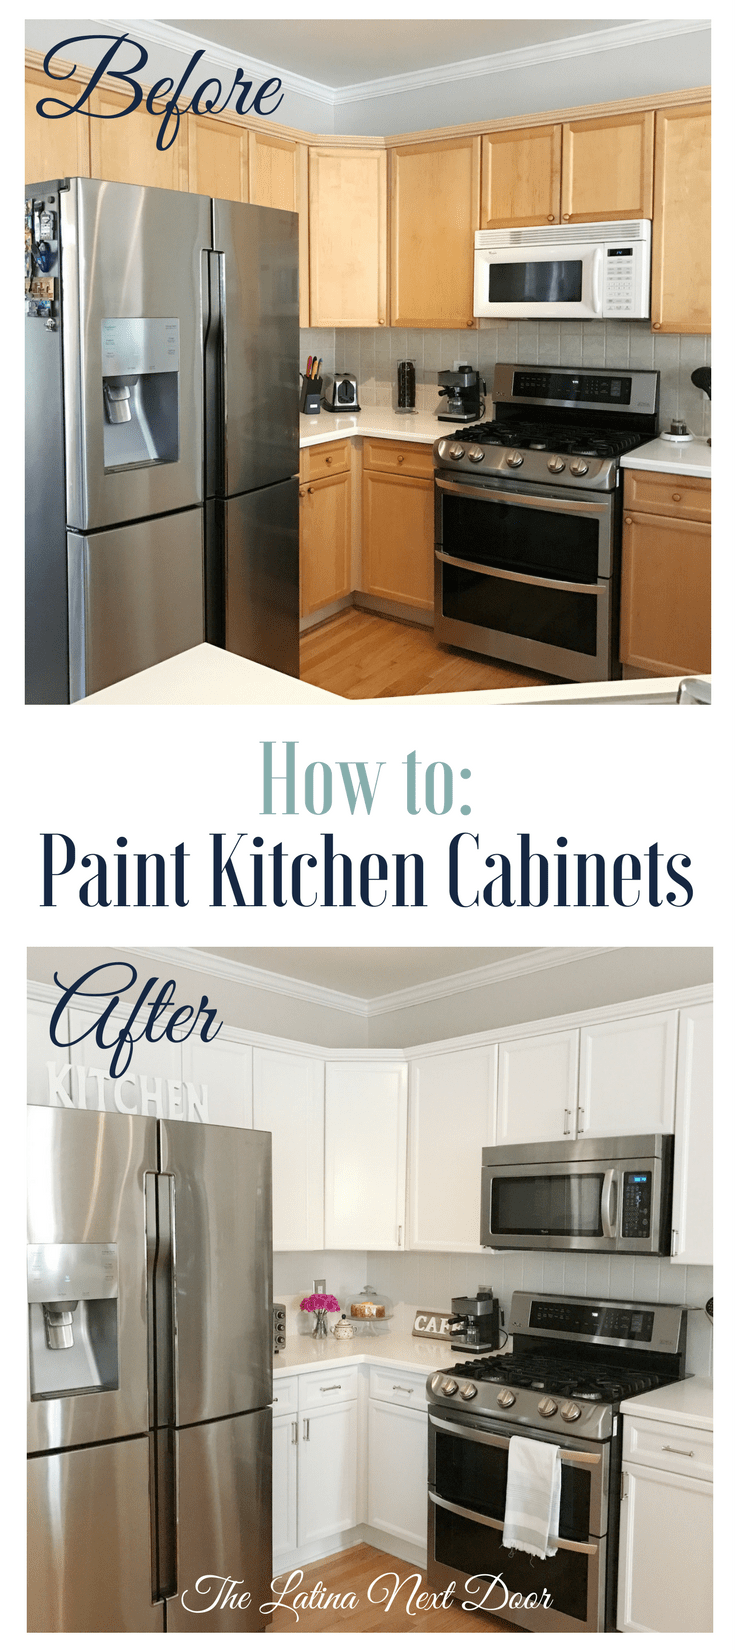 hot to paint kitchen cabinets how to paint kitchen cabinets the next door 16626